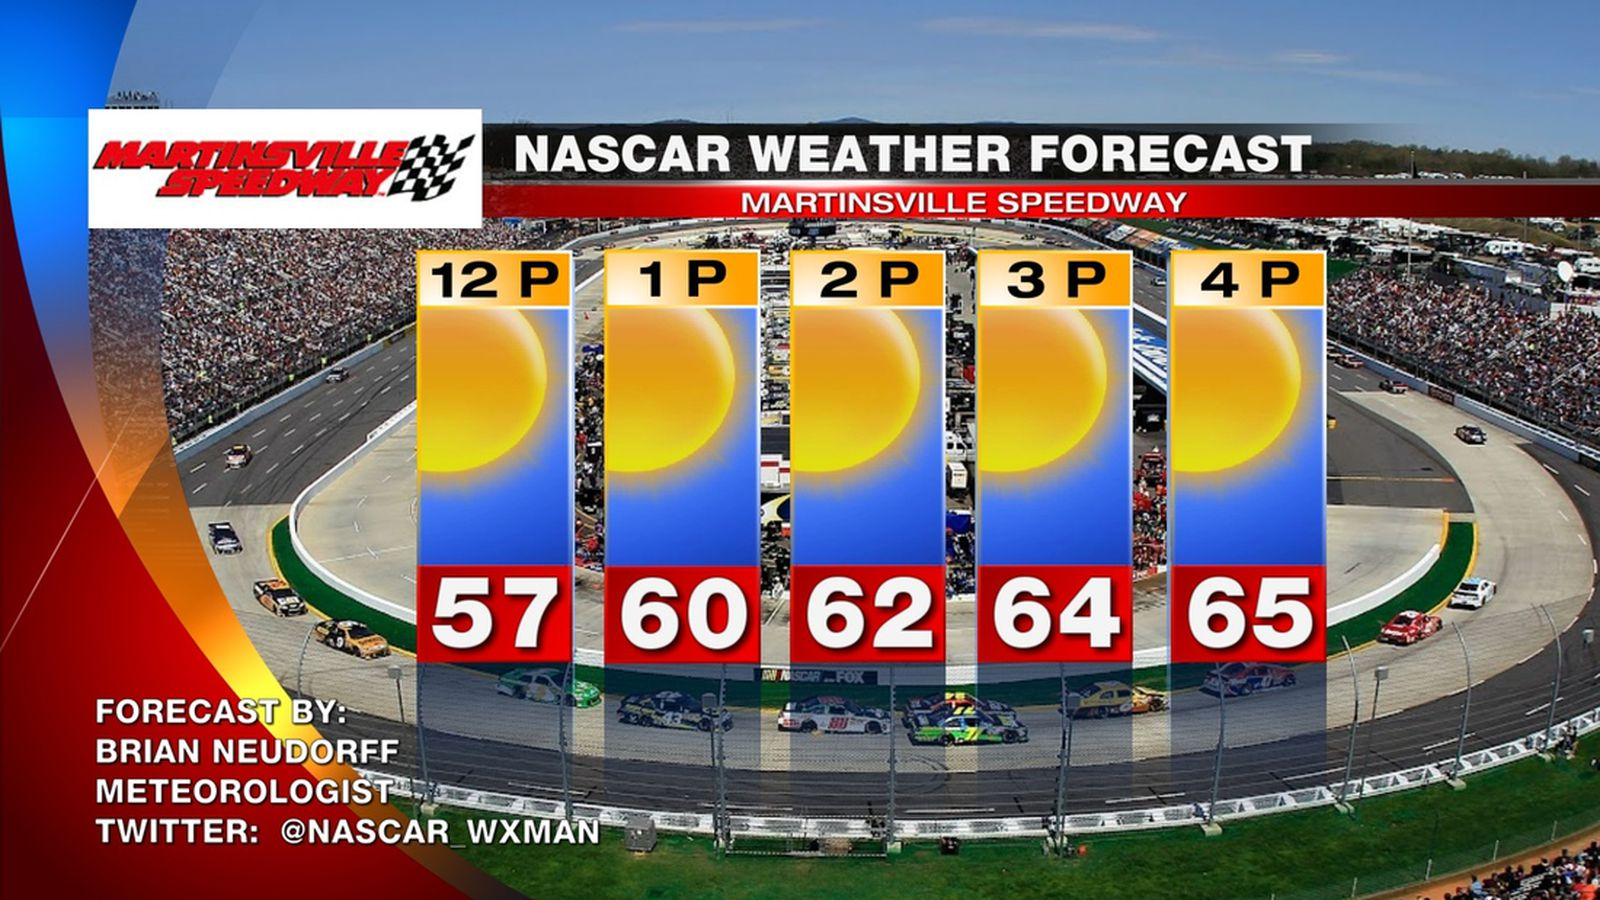 Nascar At Martinsville 2013 Race Day Weather Forecast